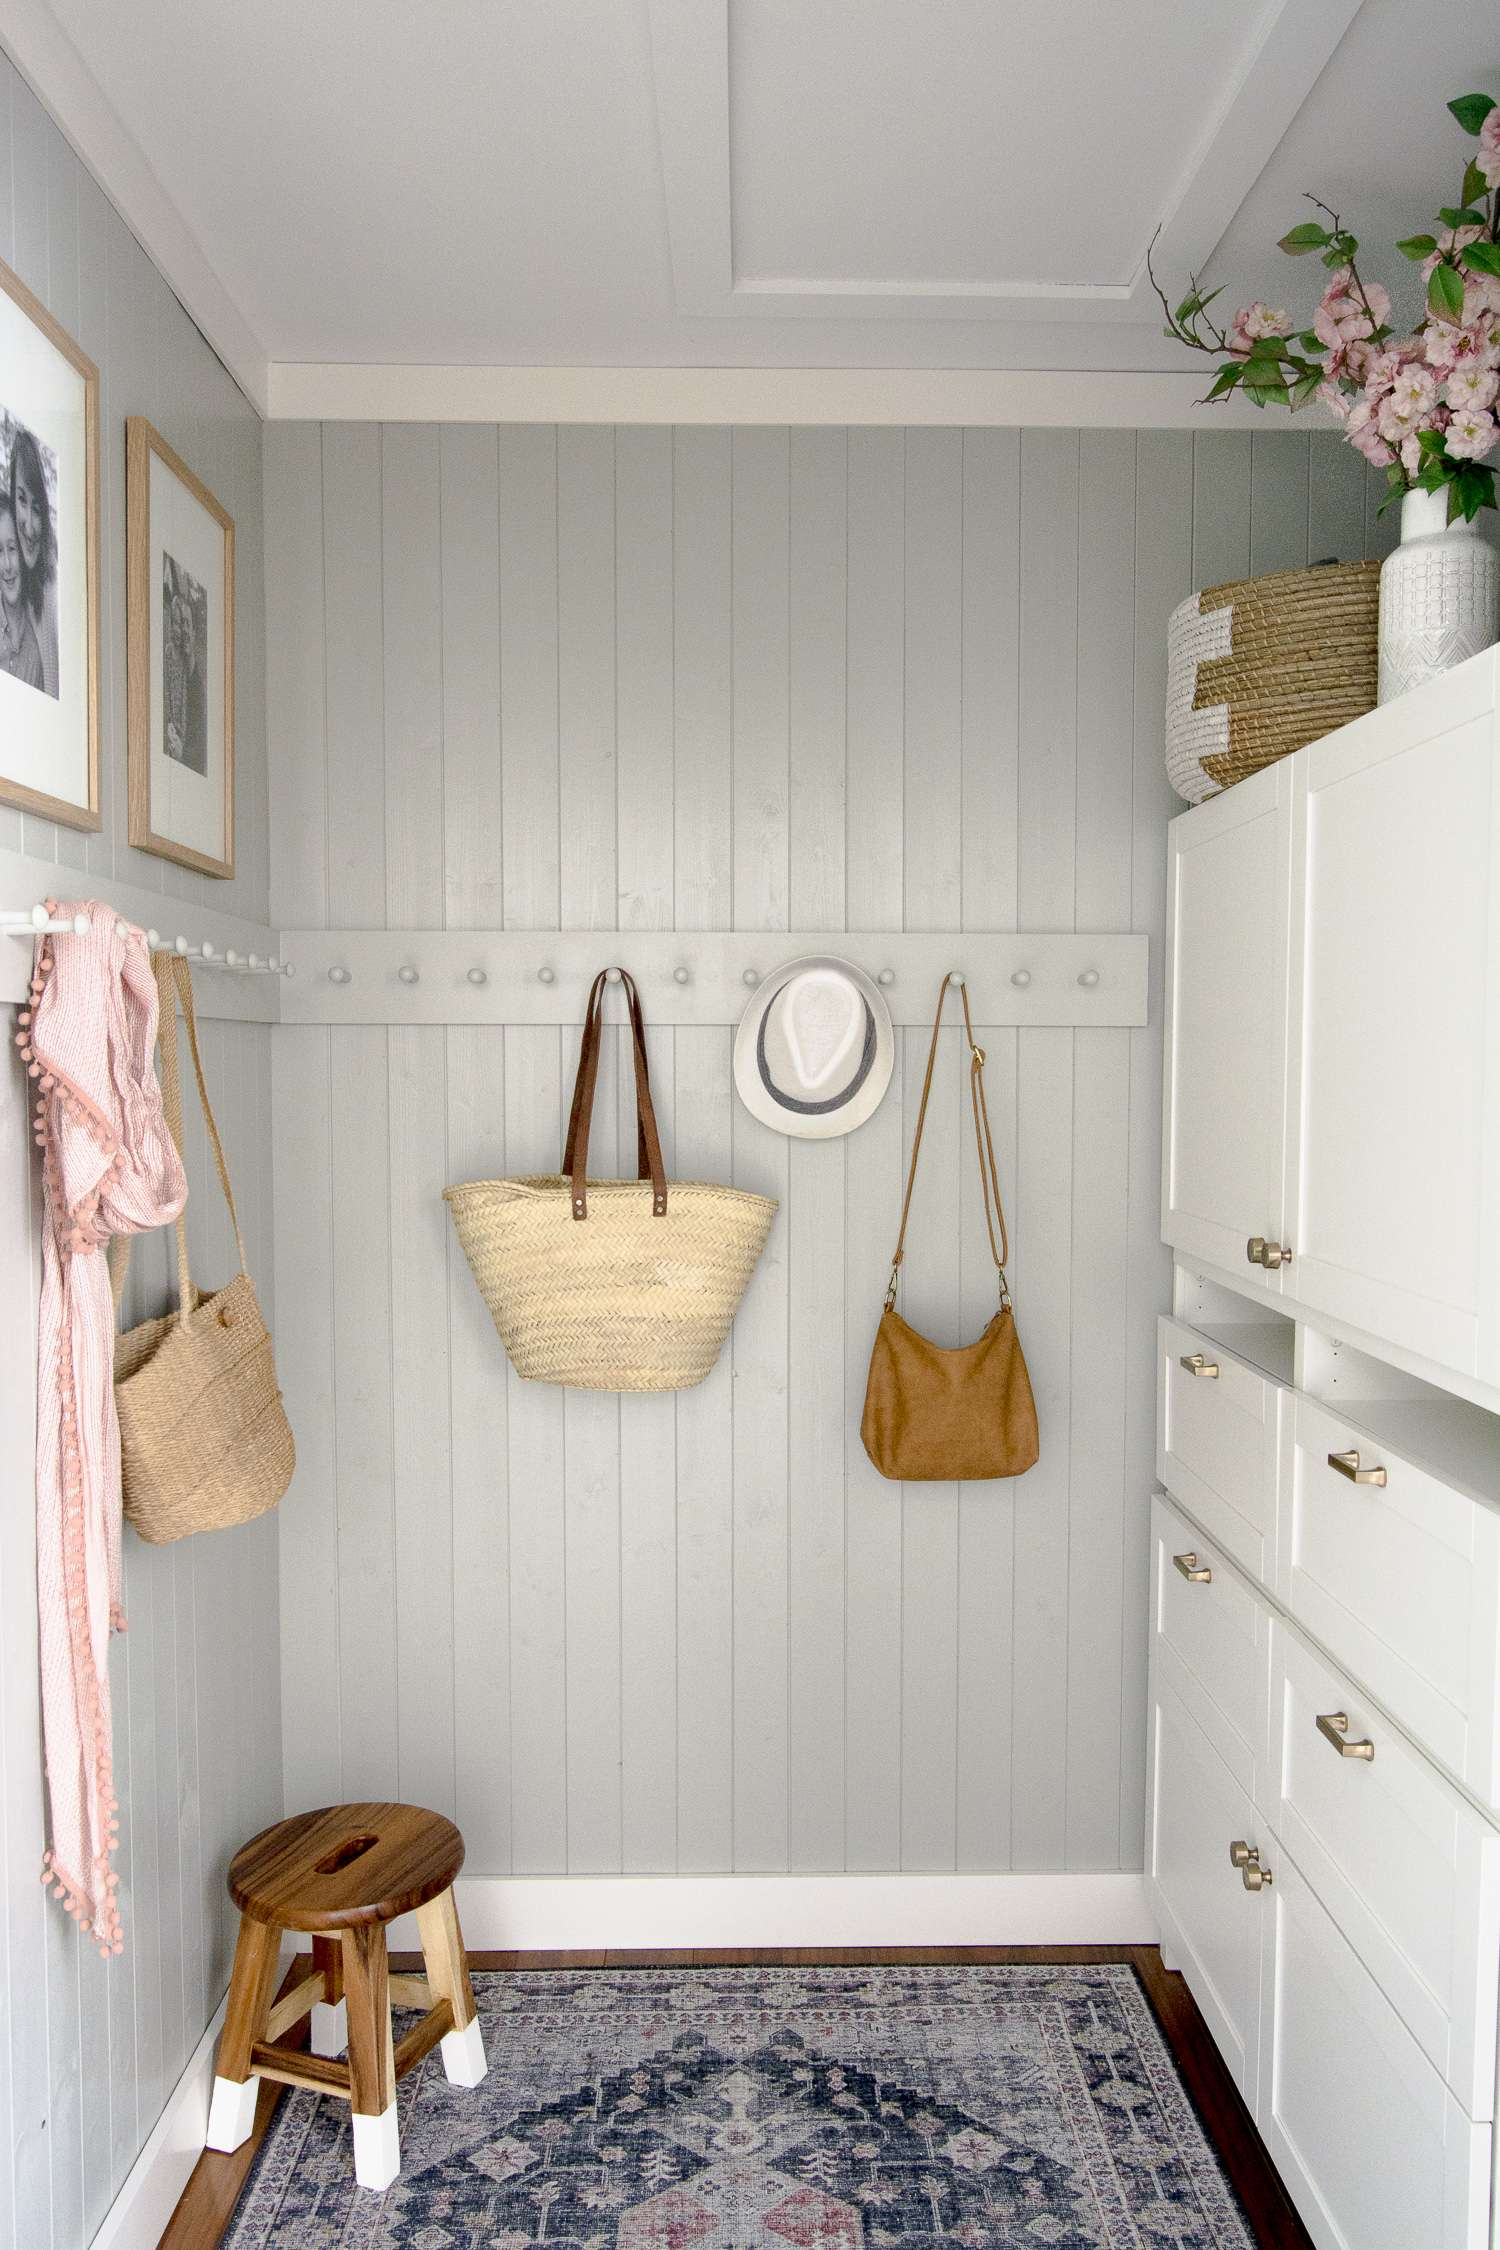 Small mudroom ideas for country living.